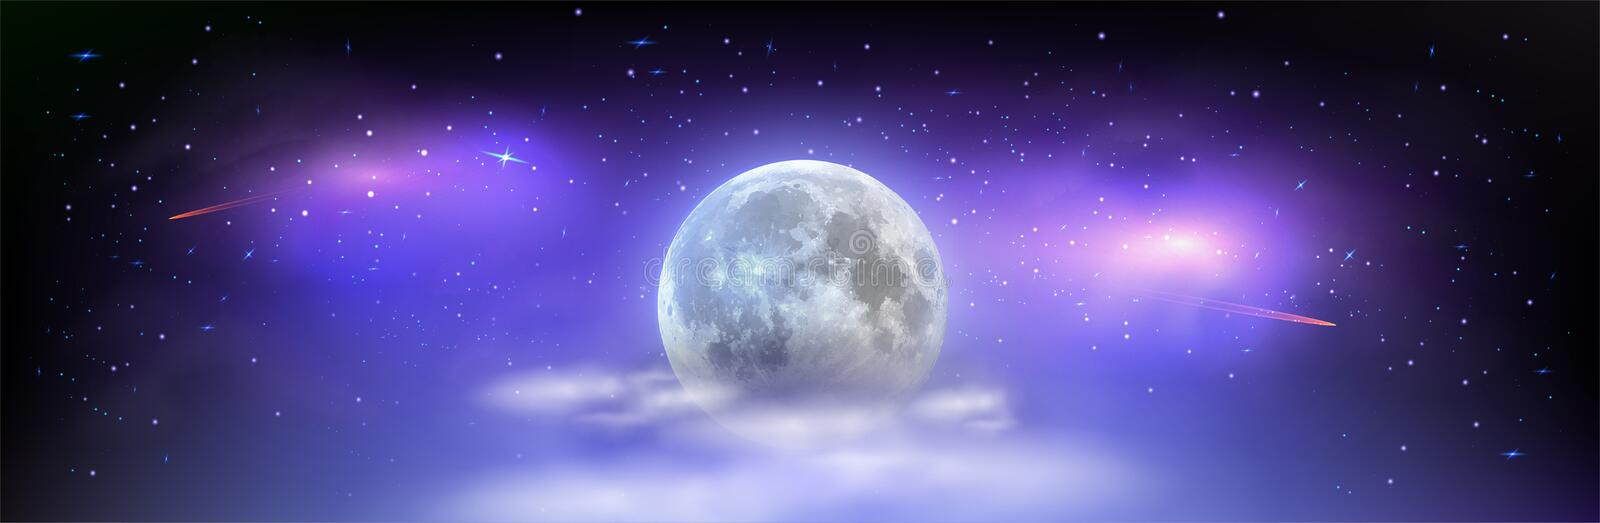 Nocni oblohaBeautiful wide picture of space with full moon hidden behind the clouds. Mystical night sky with stars. Comets and milky way vector illustration